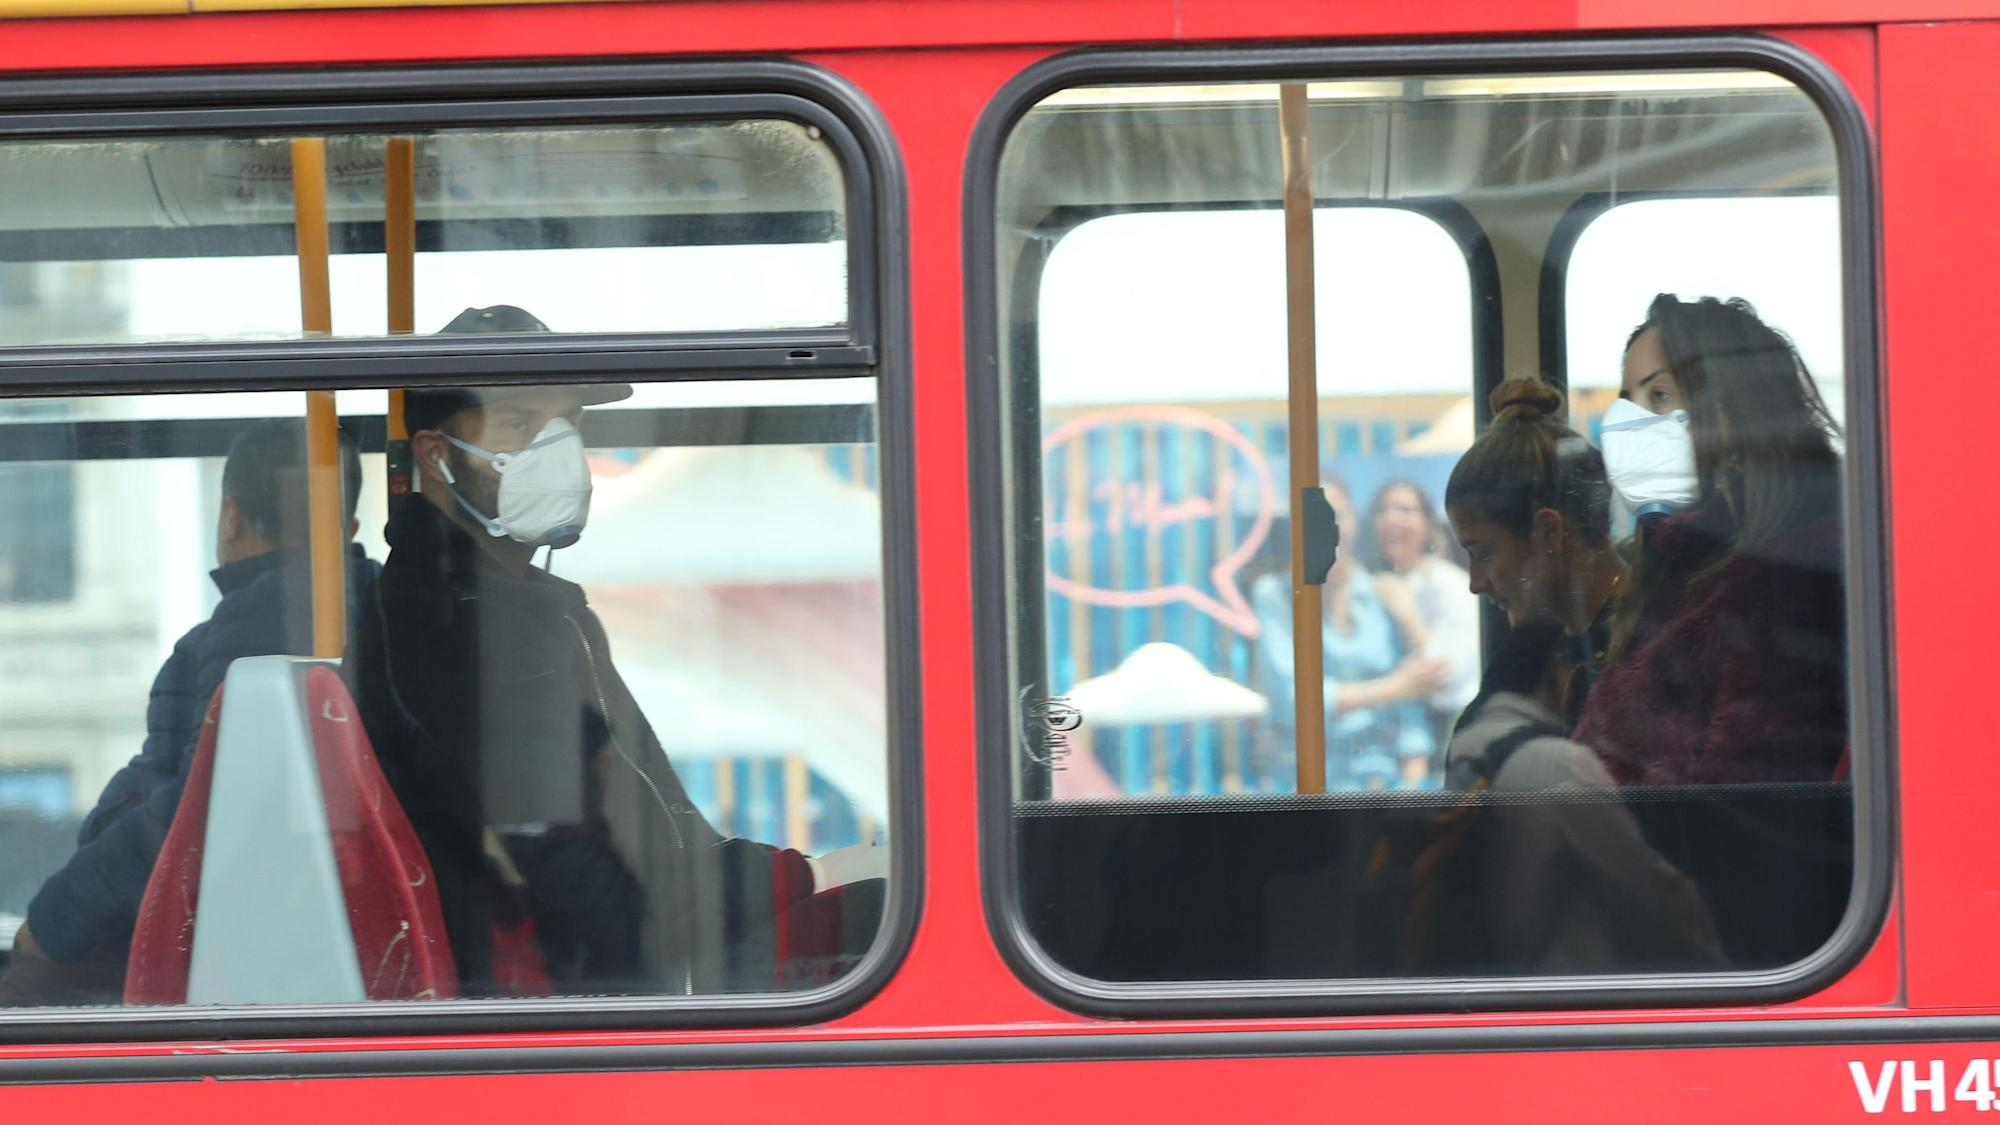 Face coverings to remain mandatory on public transport in Wales